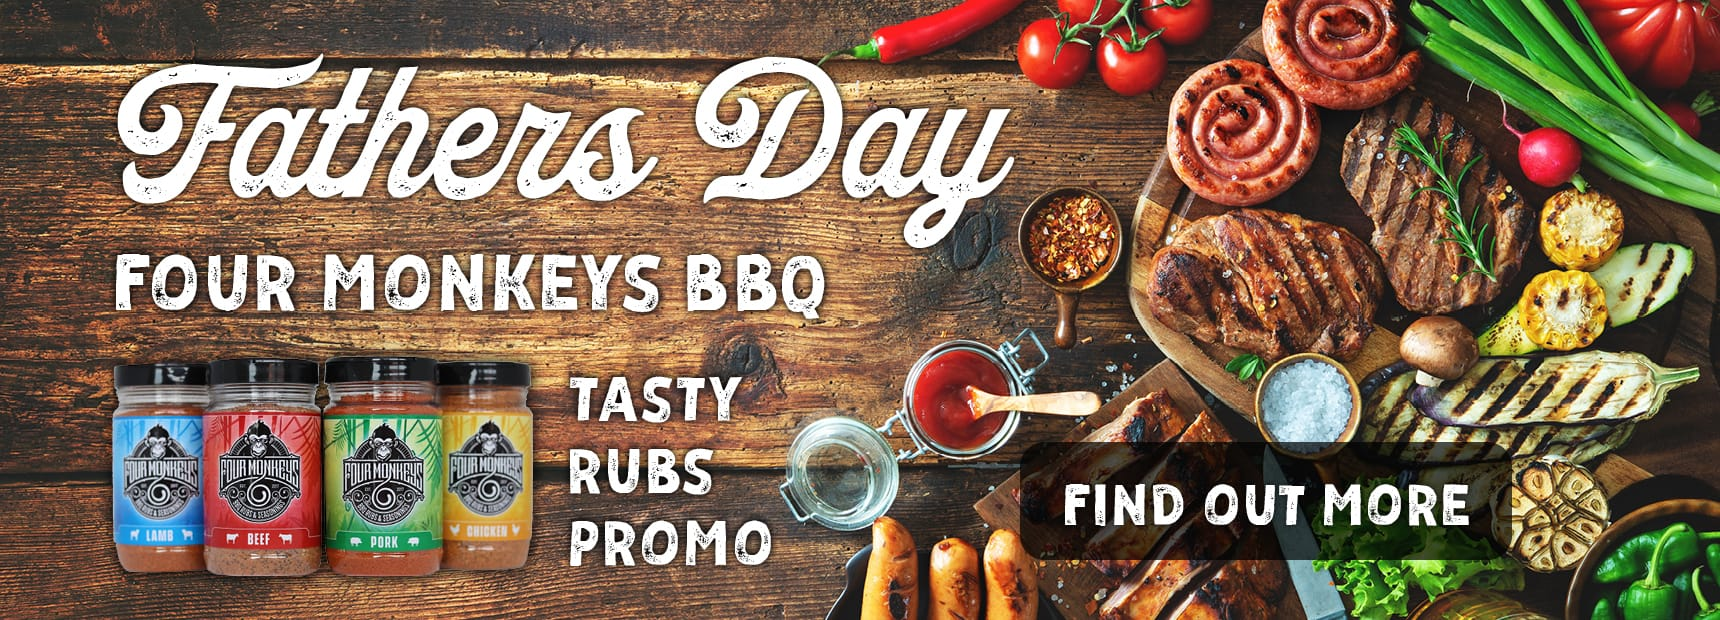 Father Day BBQ Promo